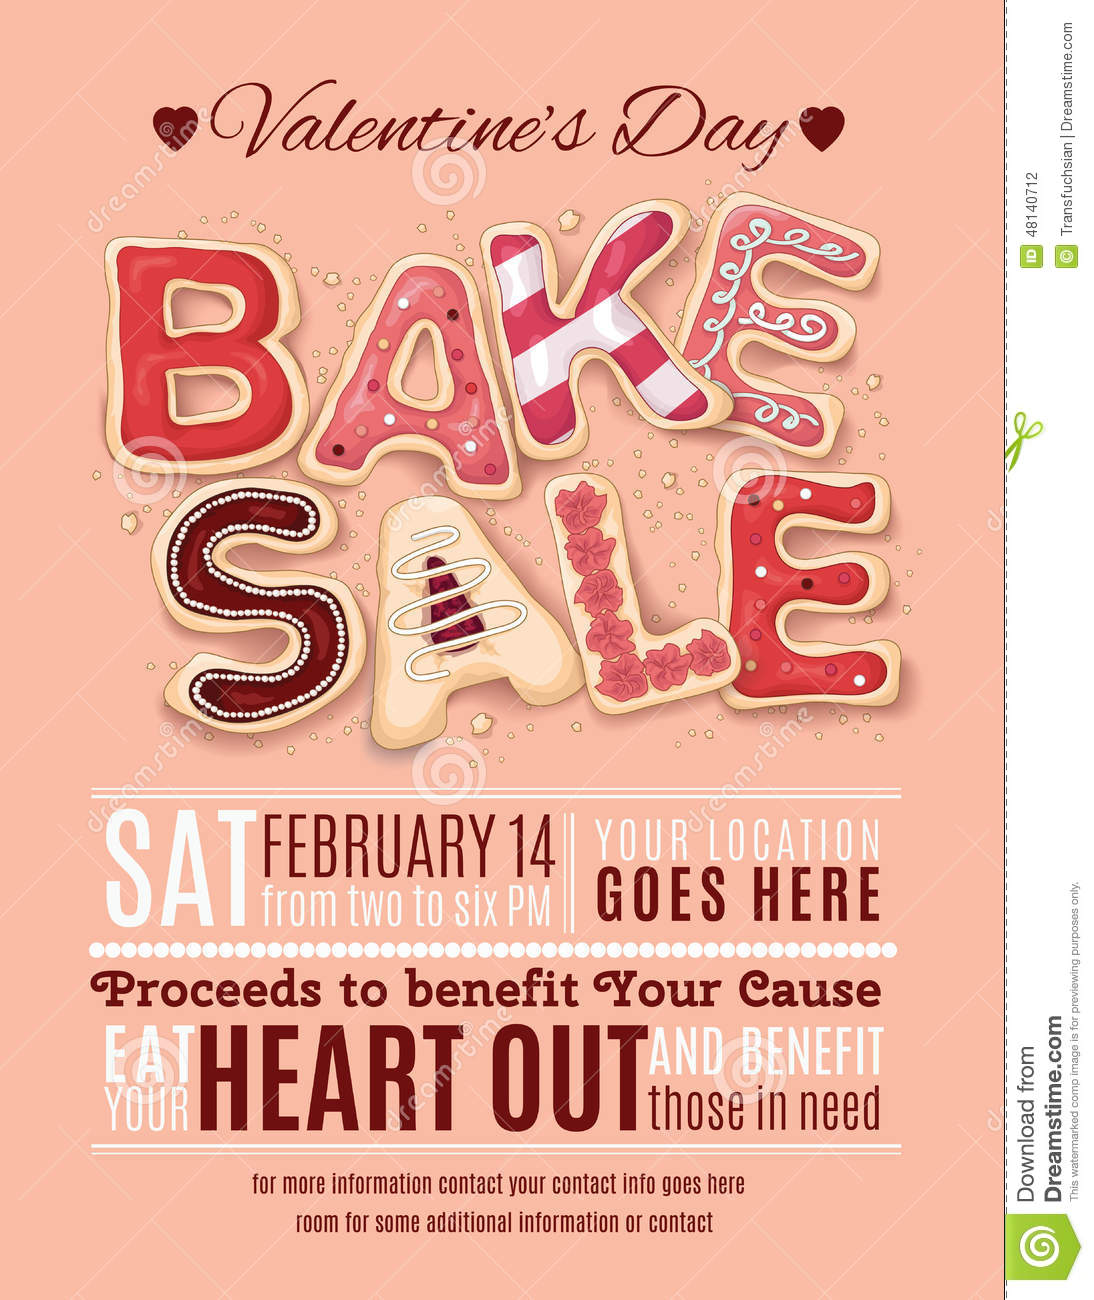 Valentines Day Bake Sale Flyer Template Stock Vector